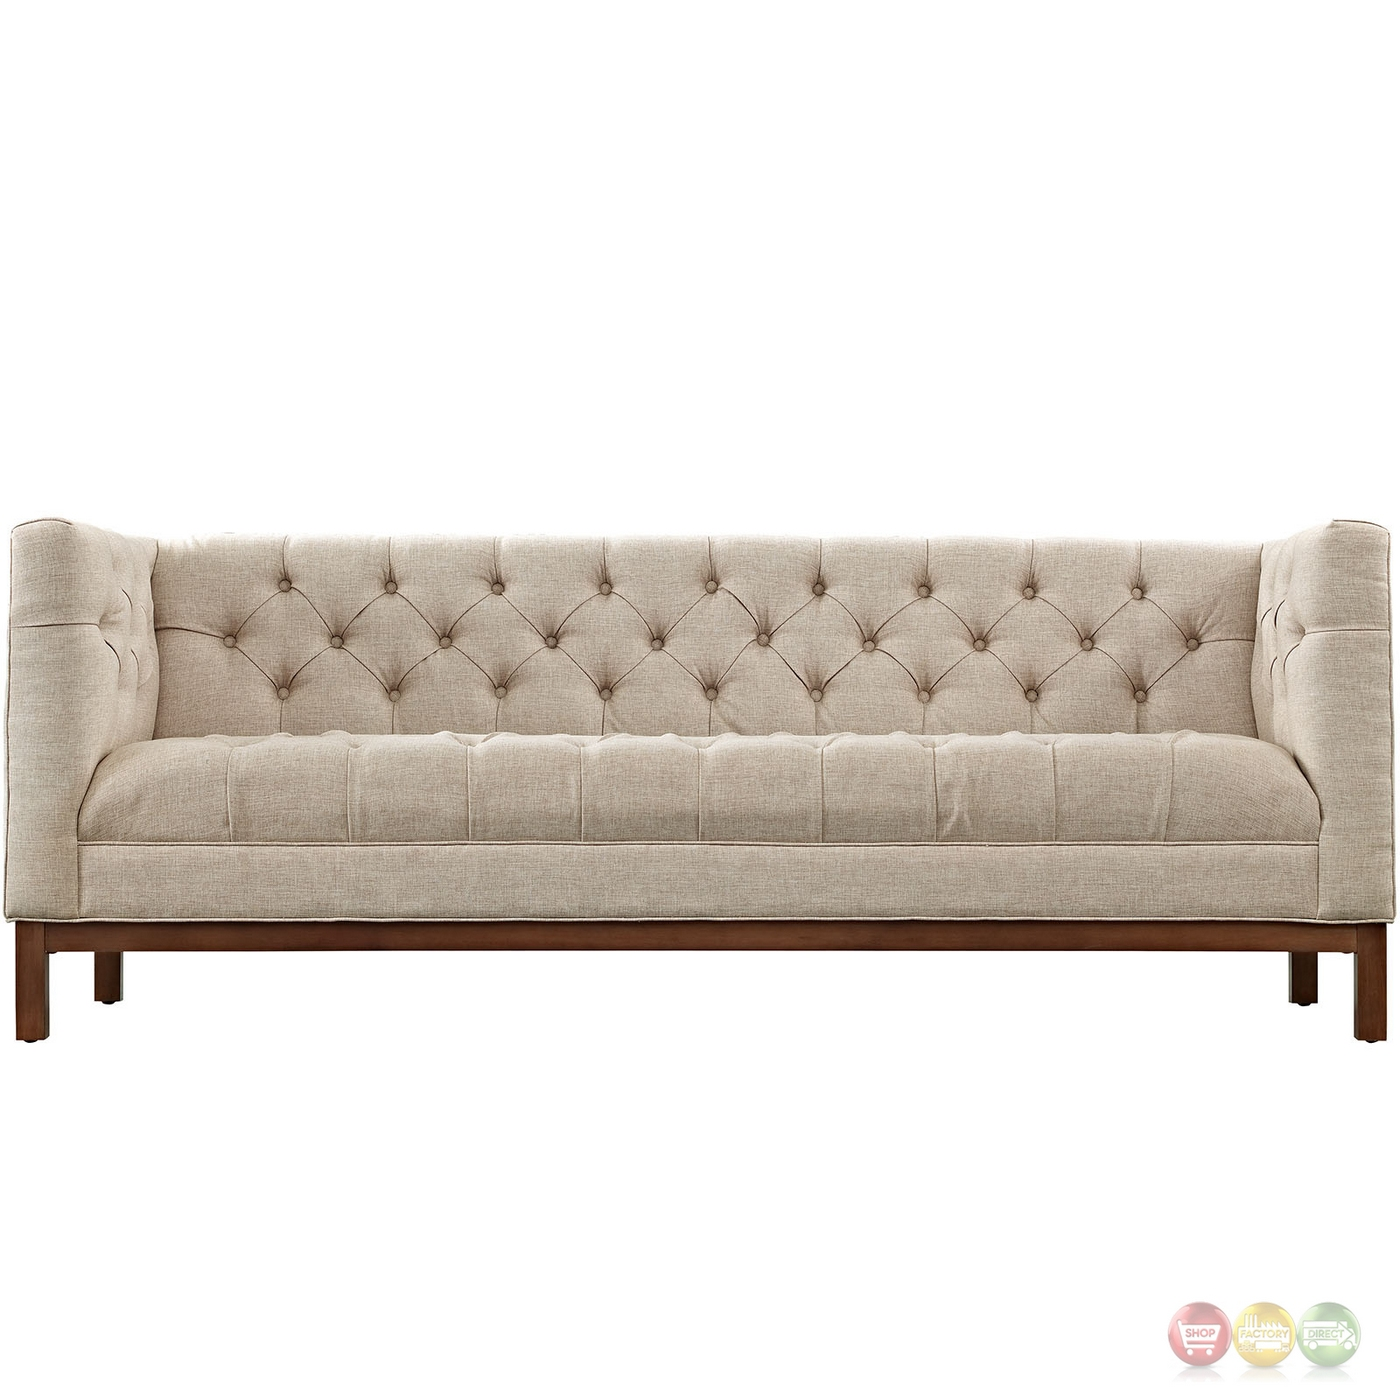 Sofa Beige Panache Vintage Square Button-tufted Upholstered Sofa, Beige